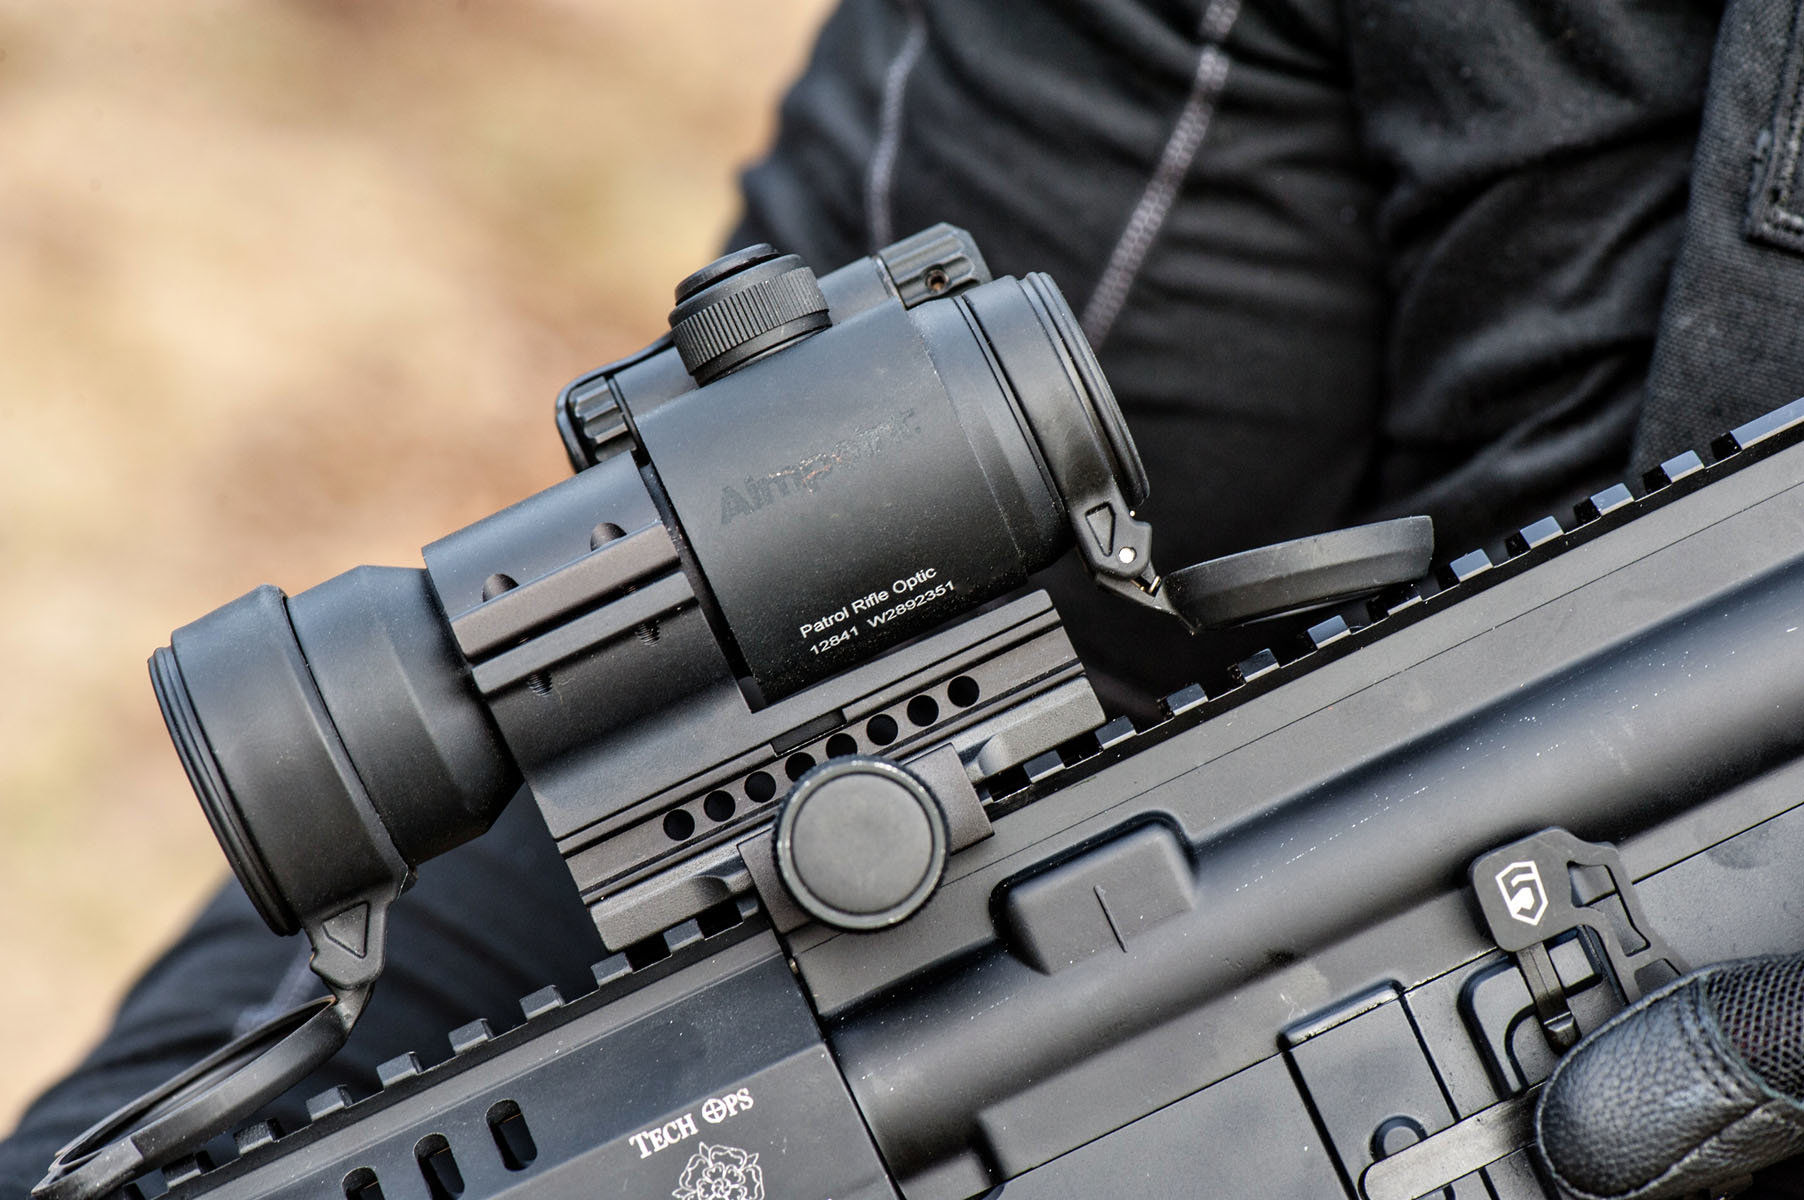 aimpoint pro advanced technology and durability gunsamerica digest